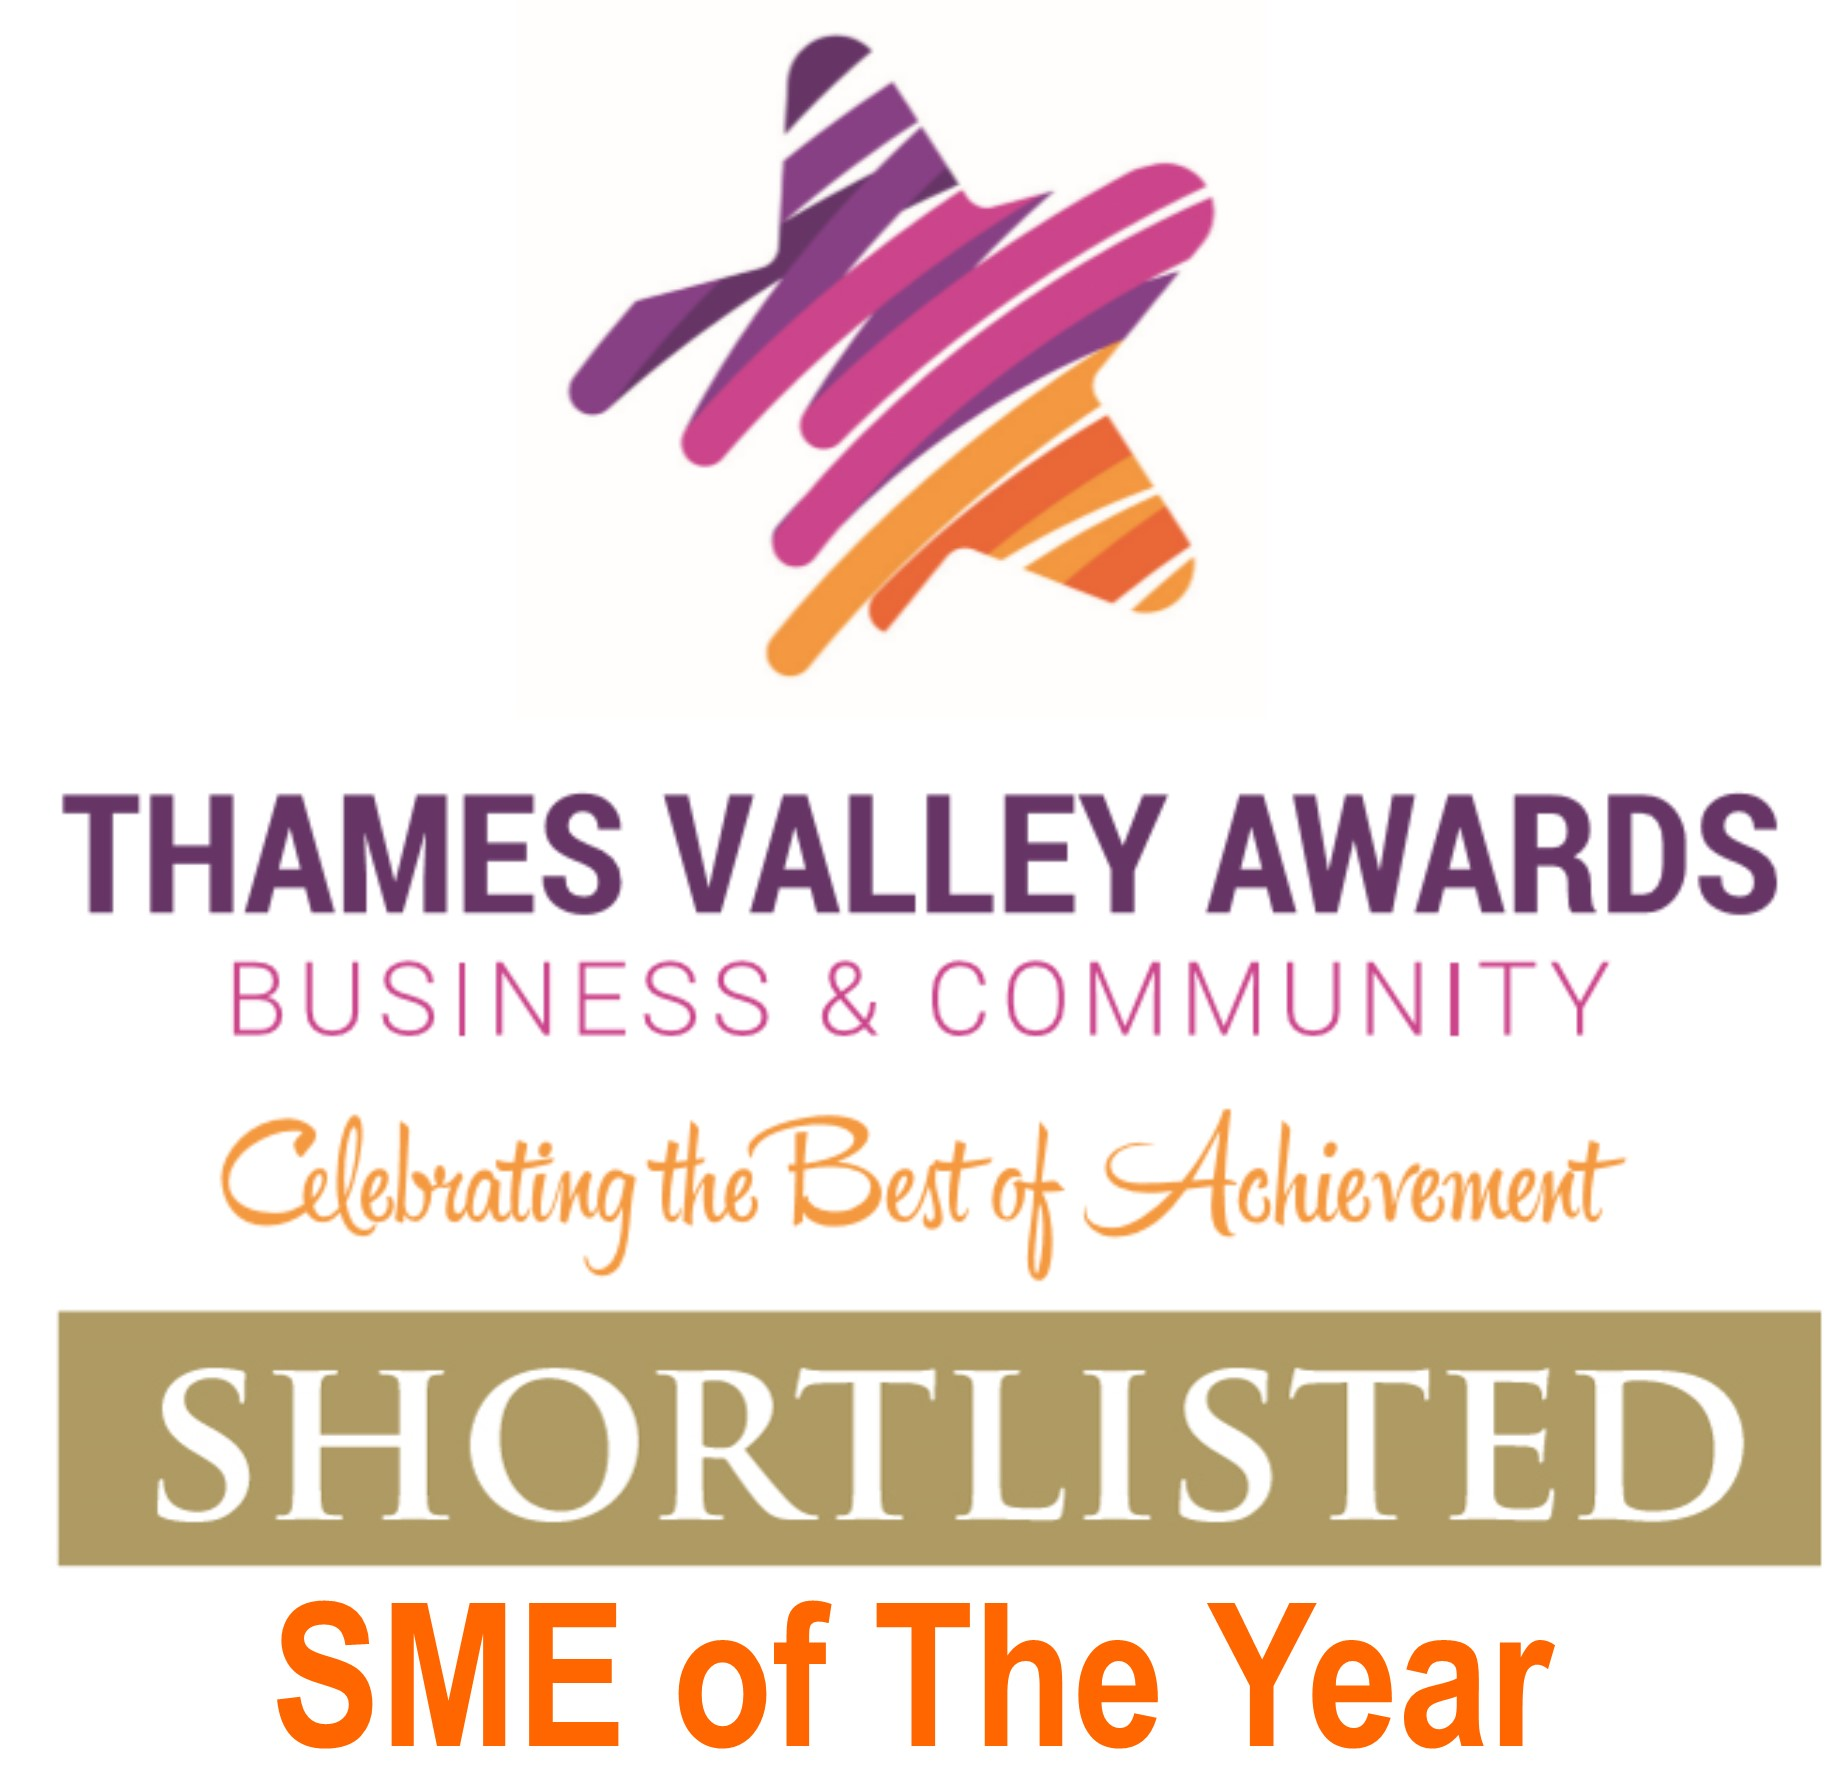 Active shortlisted for Thames Valley Business & Community Awards 2018